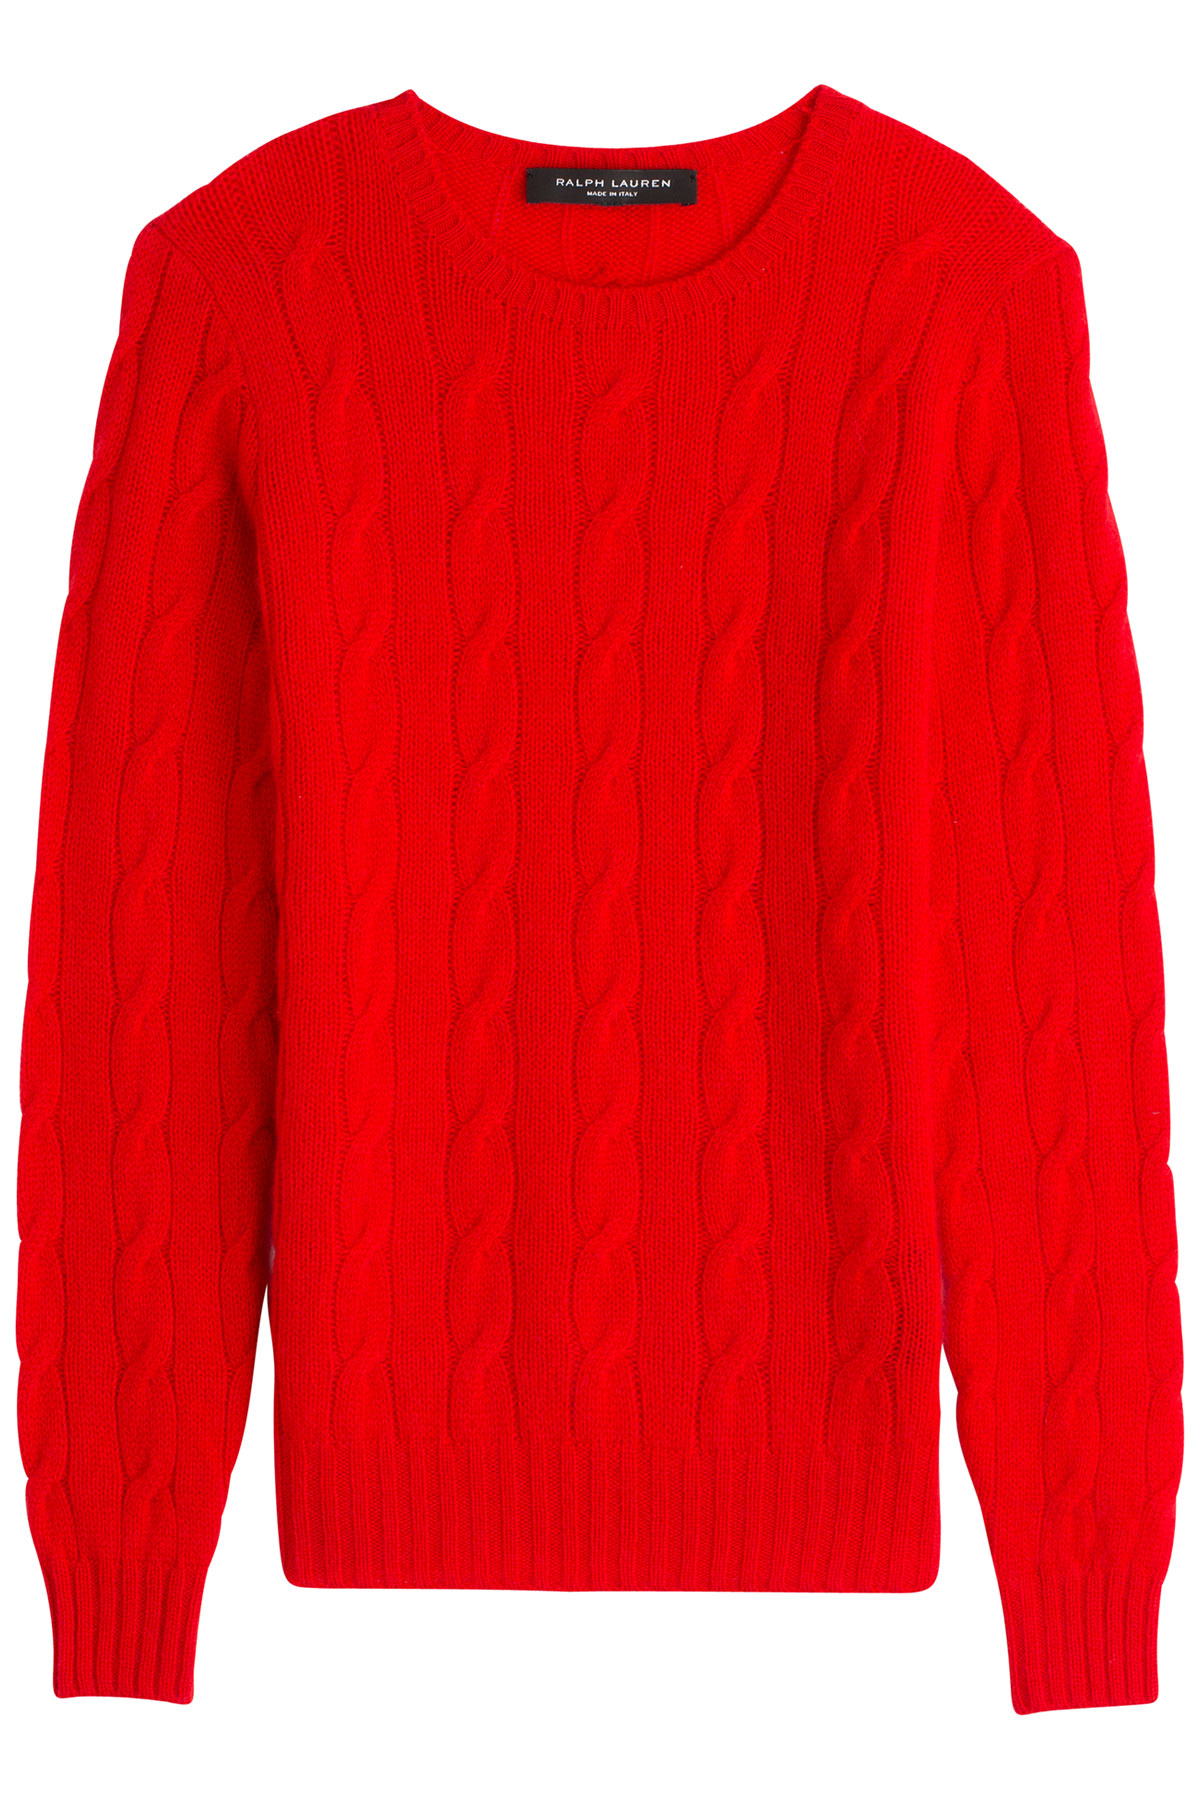 ralph lauren black label cashmere cable knit pullover red in red lyst. Black Bedroom Furniture Sets. Home Design Ideas